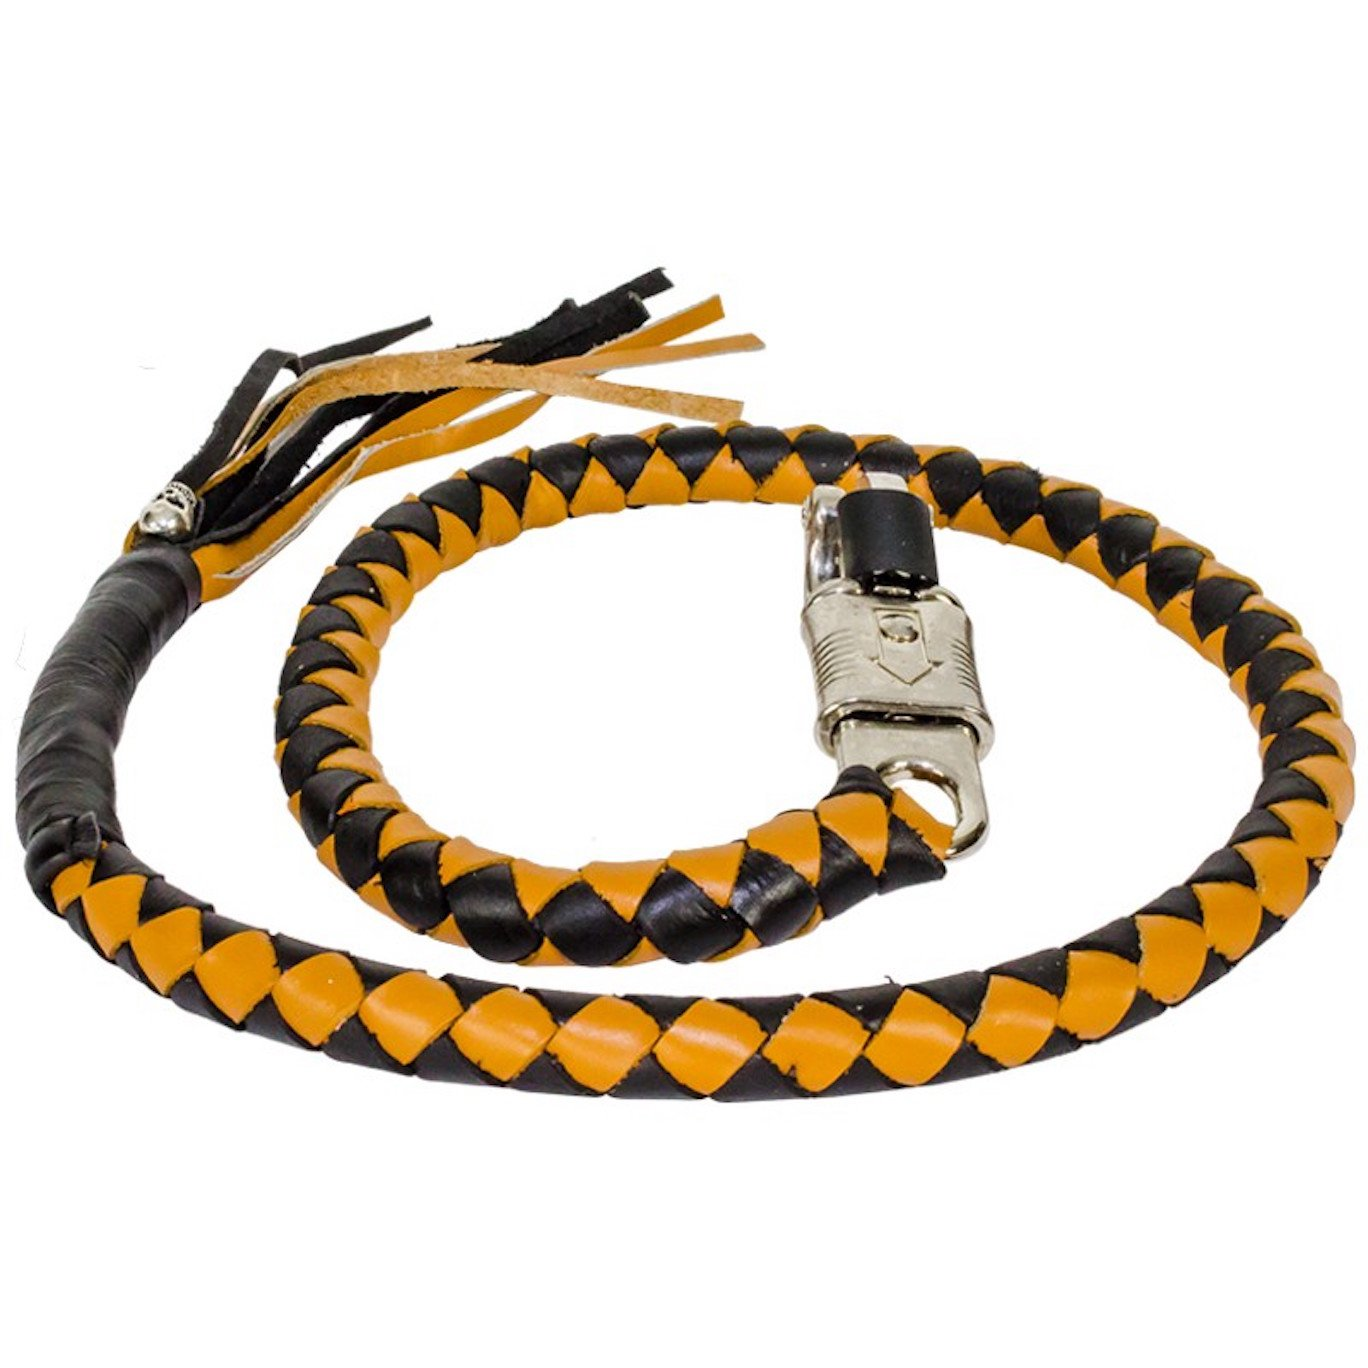 Black And Tan Get Back Whip For Motorcycles